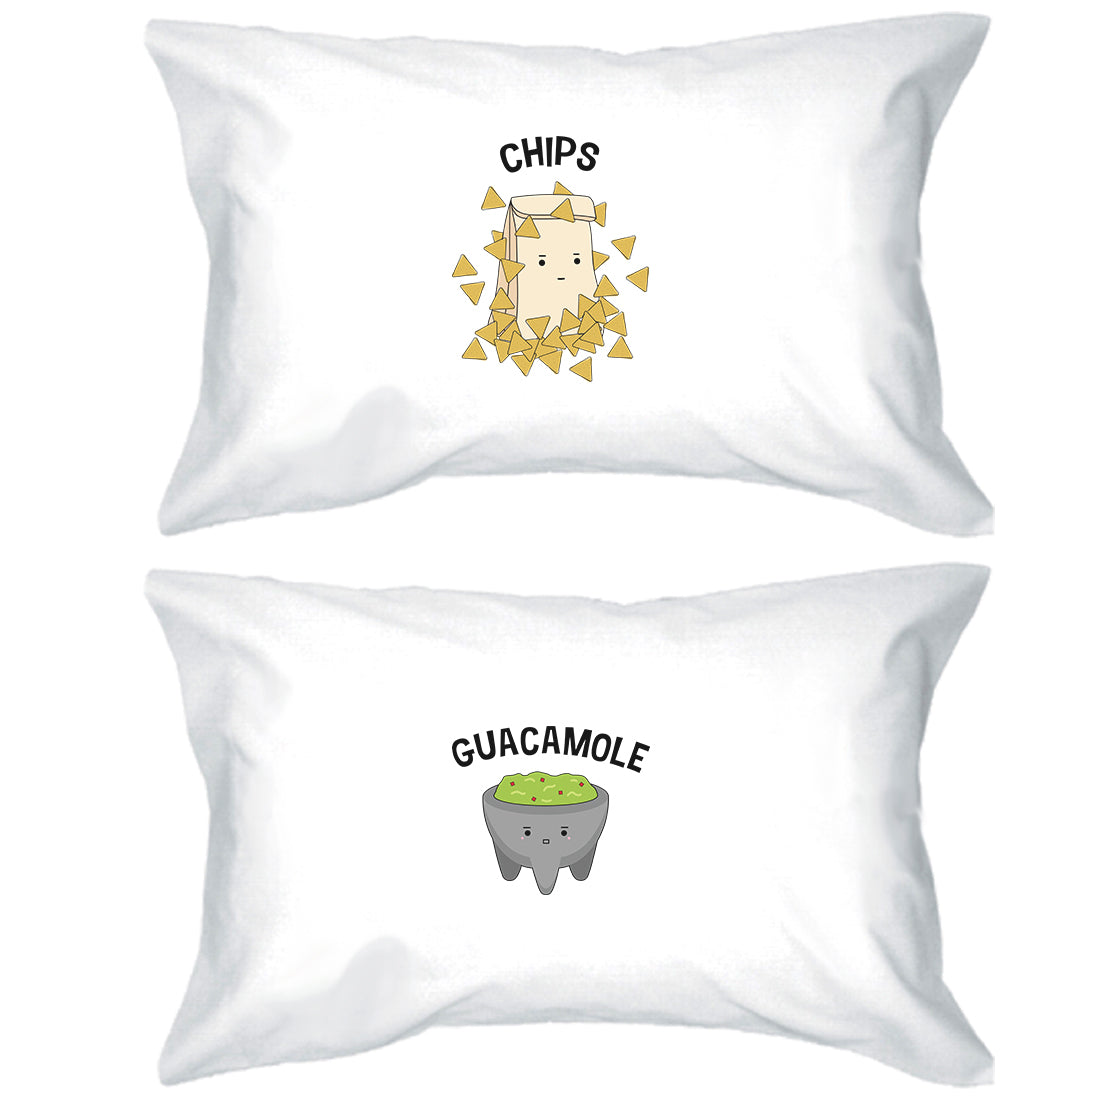 Funny Wedding Gifts.Chips Guacamole Cute Matching Pillow Cases Funny Wedding Gifts